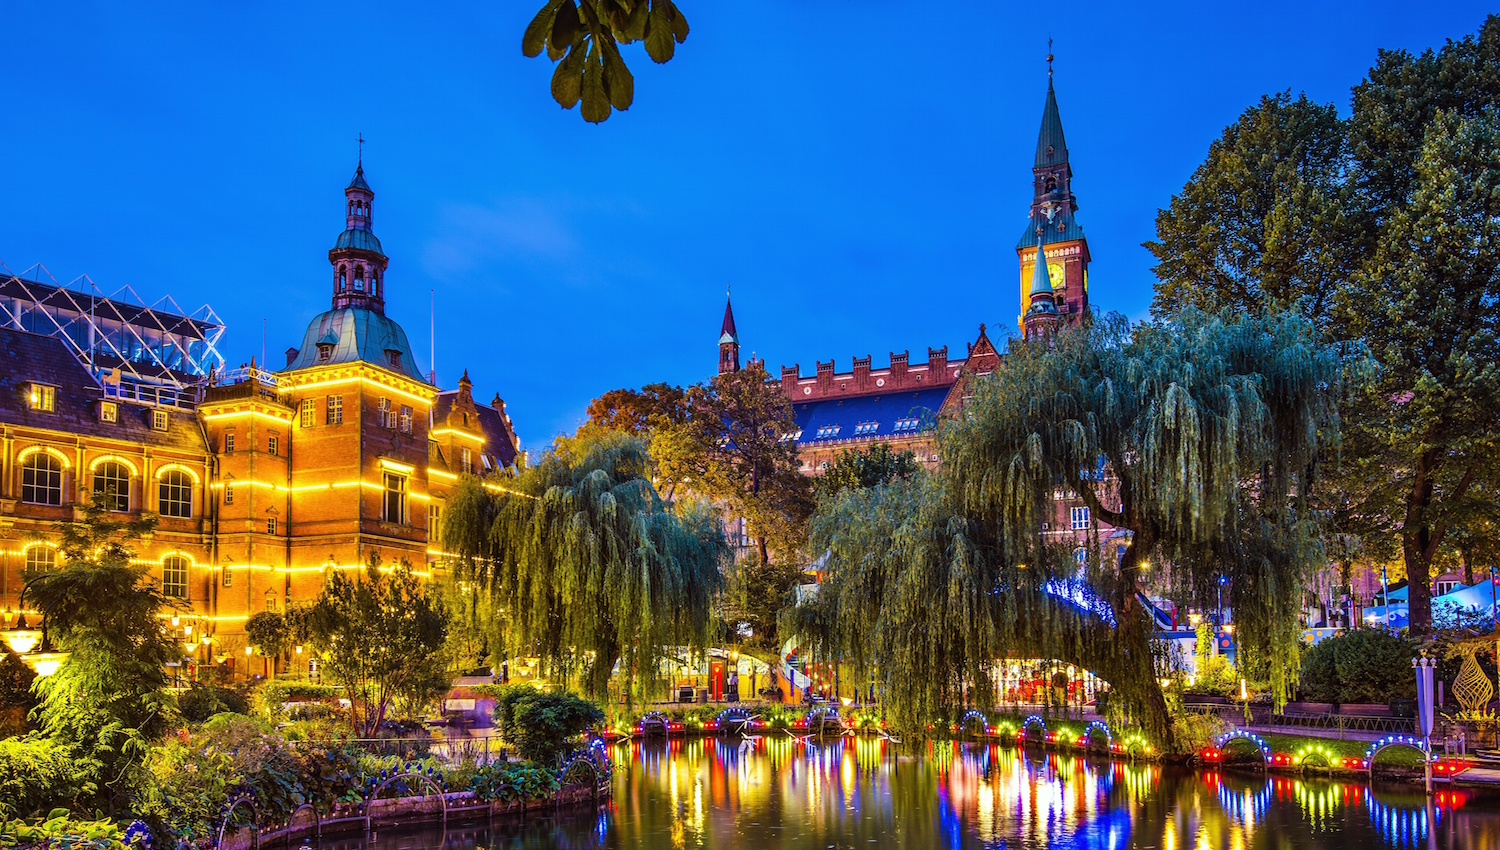 Tivoli Park Restaurants Tivoli Gardens Copenhagen Book Tickets And Tours